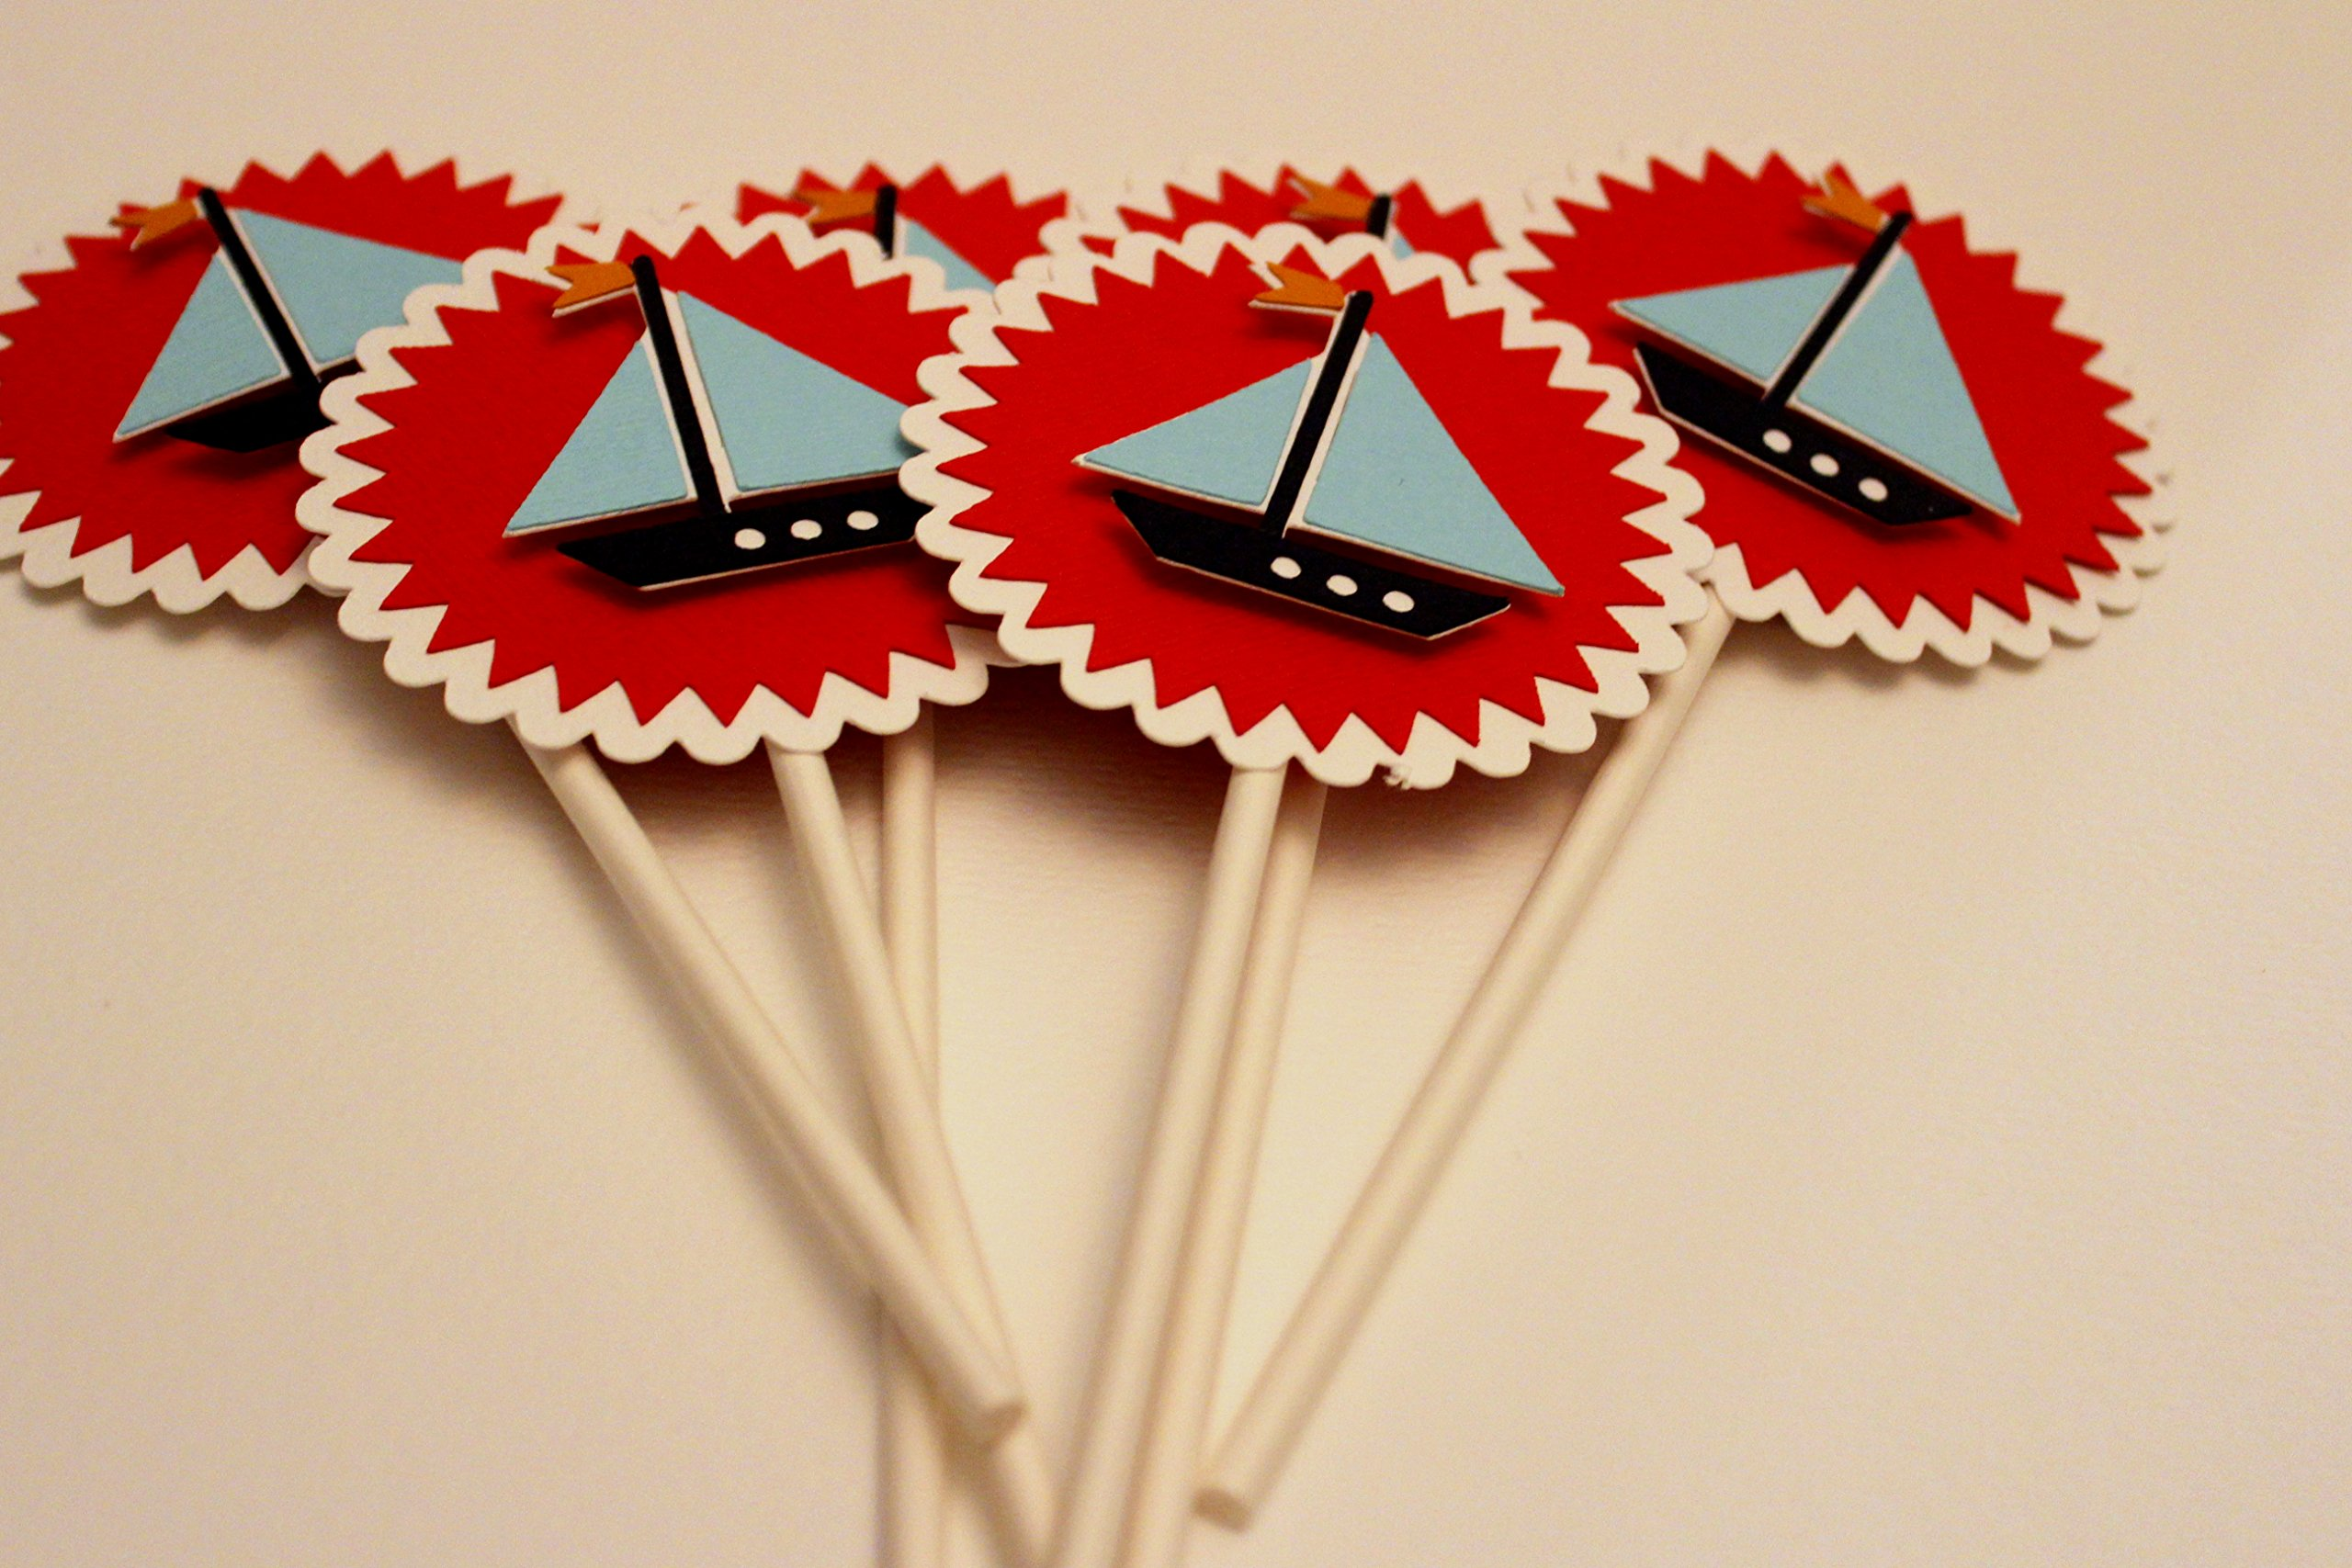 AHOY IT'S A BOY toppers - Sailboat cupcake toppers - Baby Shower cupcake decorations - Birthday Party - Set of 12 cupcake toppers